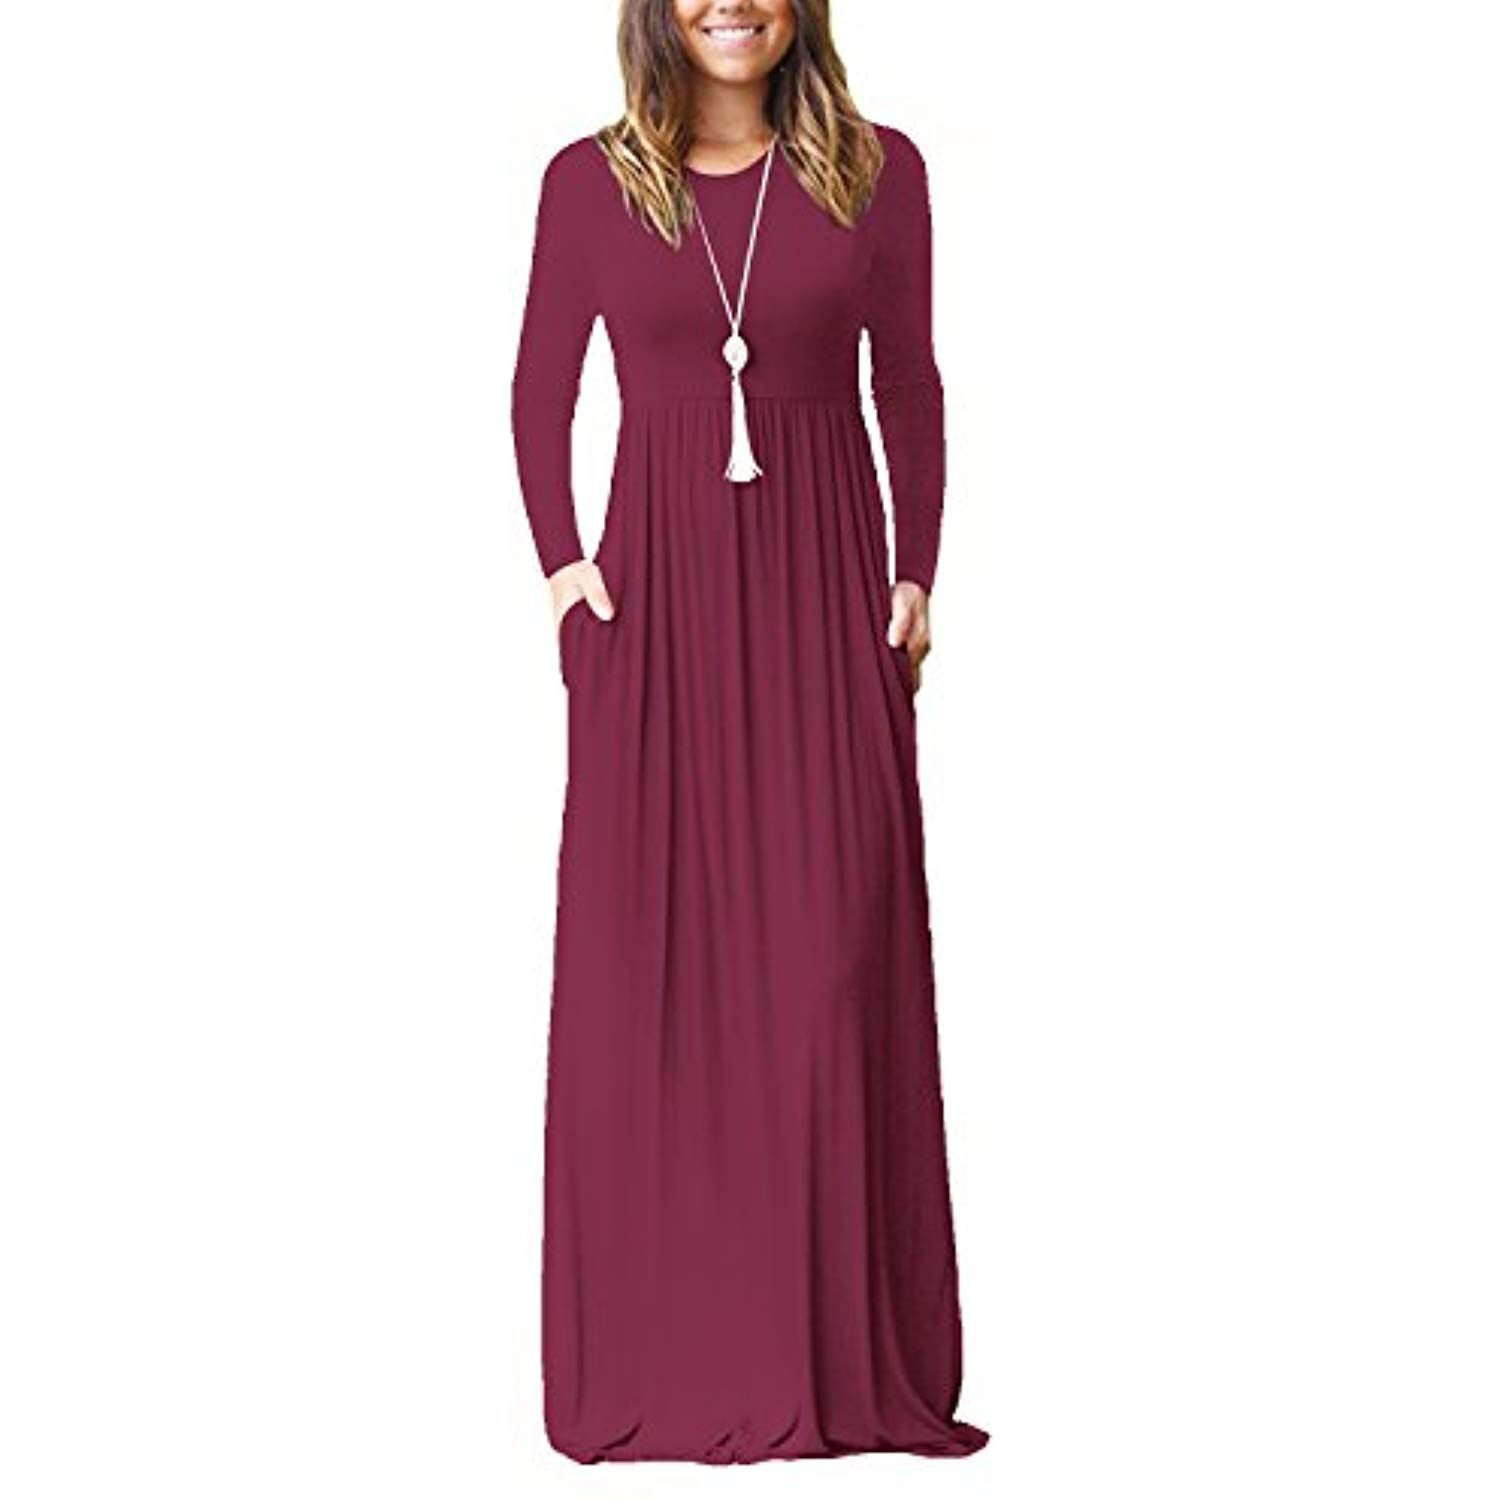 Women S Casual Long Sleeve Maxi Dress Loose Plain Long Dresses With Pockets Want To Know More Click On The Maxi Dress Long Dress Casual Maxi Dresses Casual [ 1500 x 1500 Pixel ]